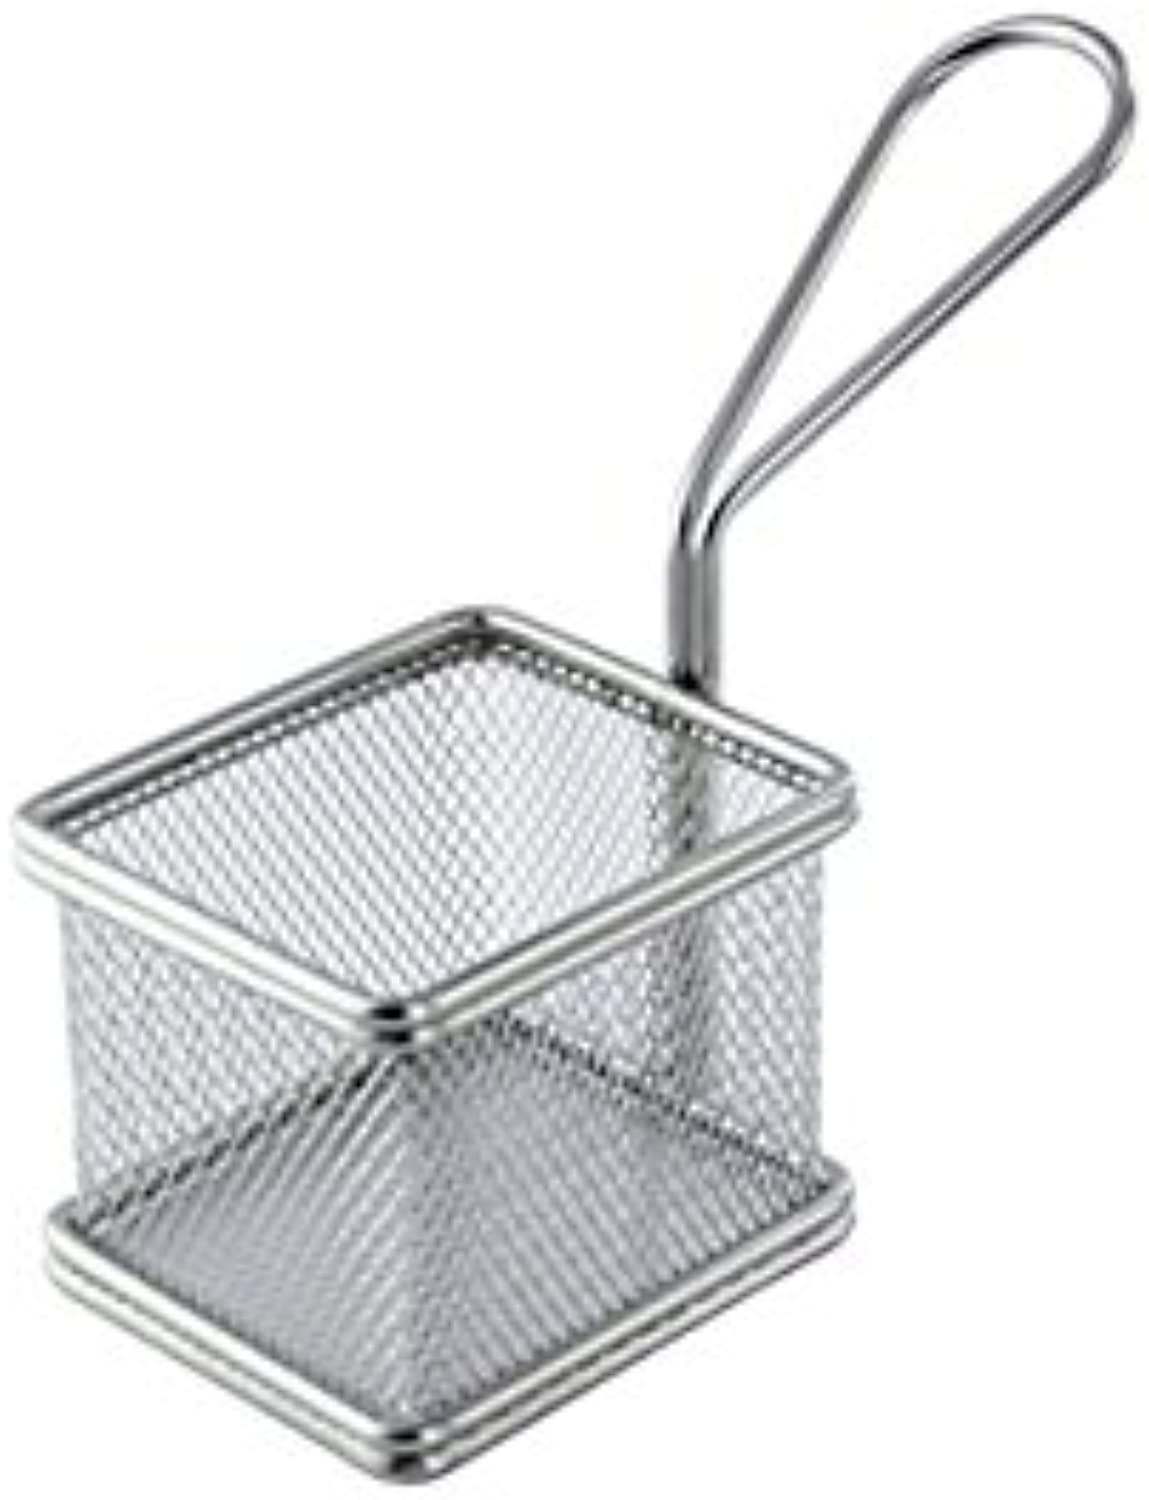 Small Stainless Steel Fryer Basket (Case of 6), PacknWood - Metal Wire Display Basket Stand (3.1 x 2.75 x 2.5 ) 294PANC8